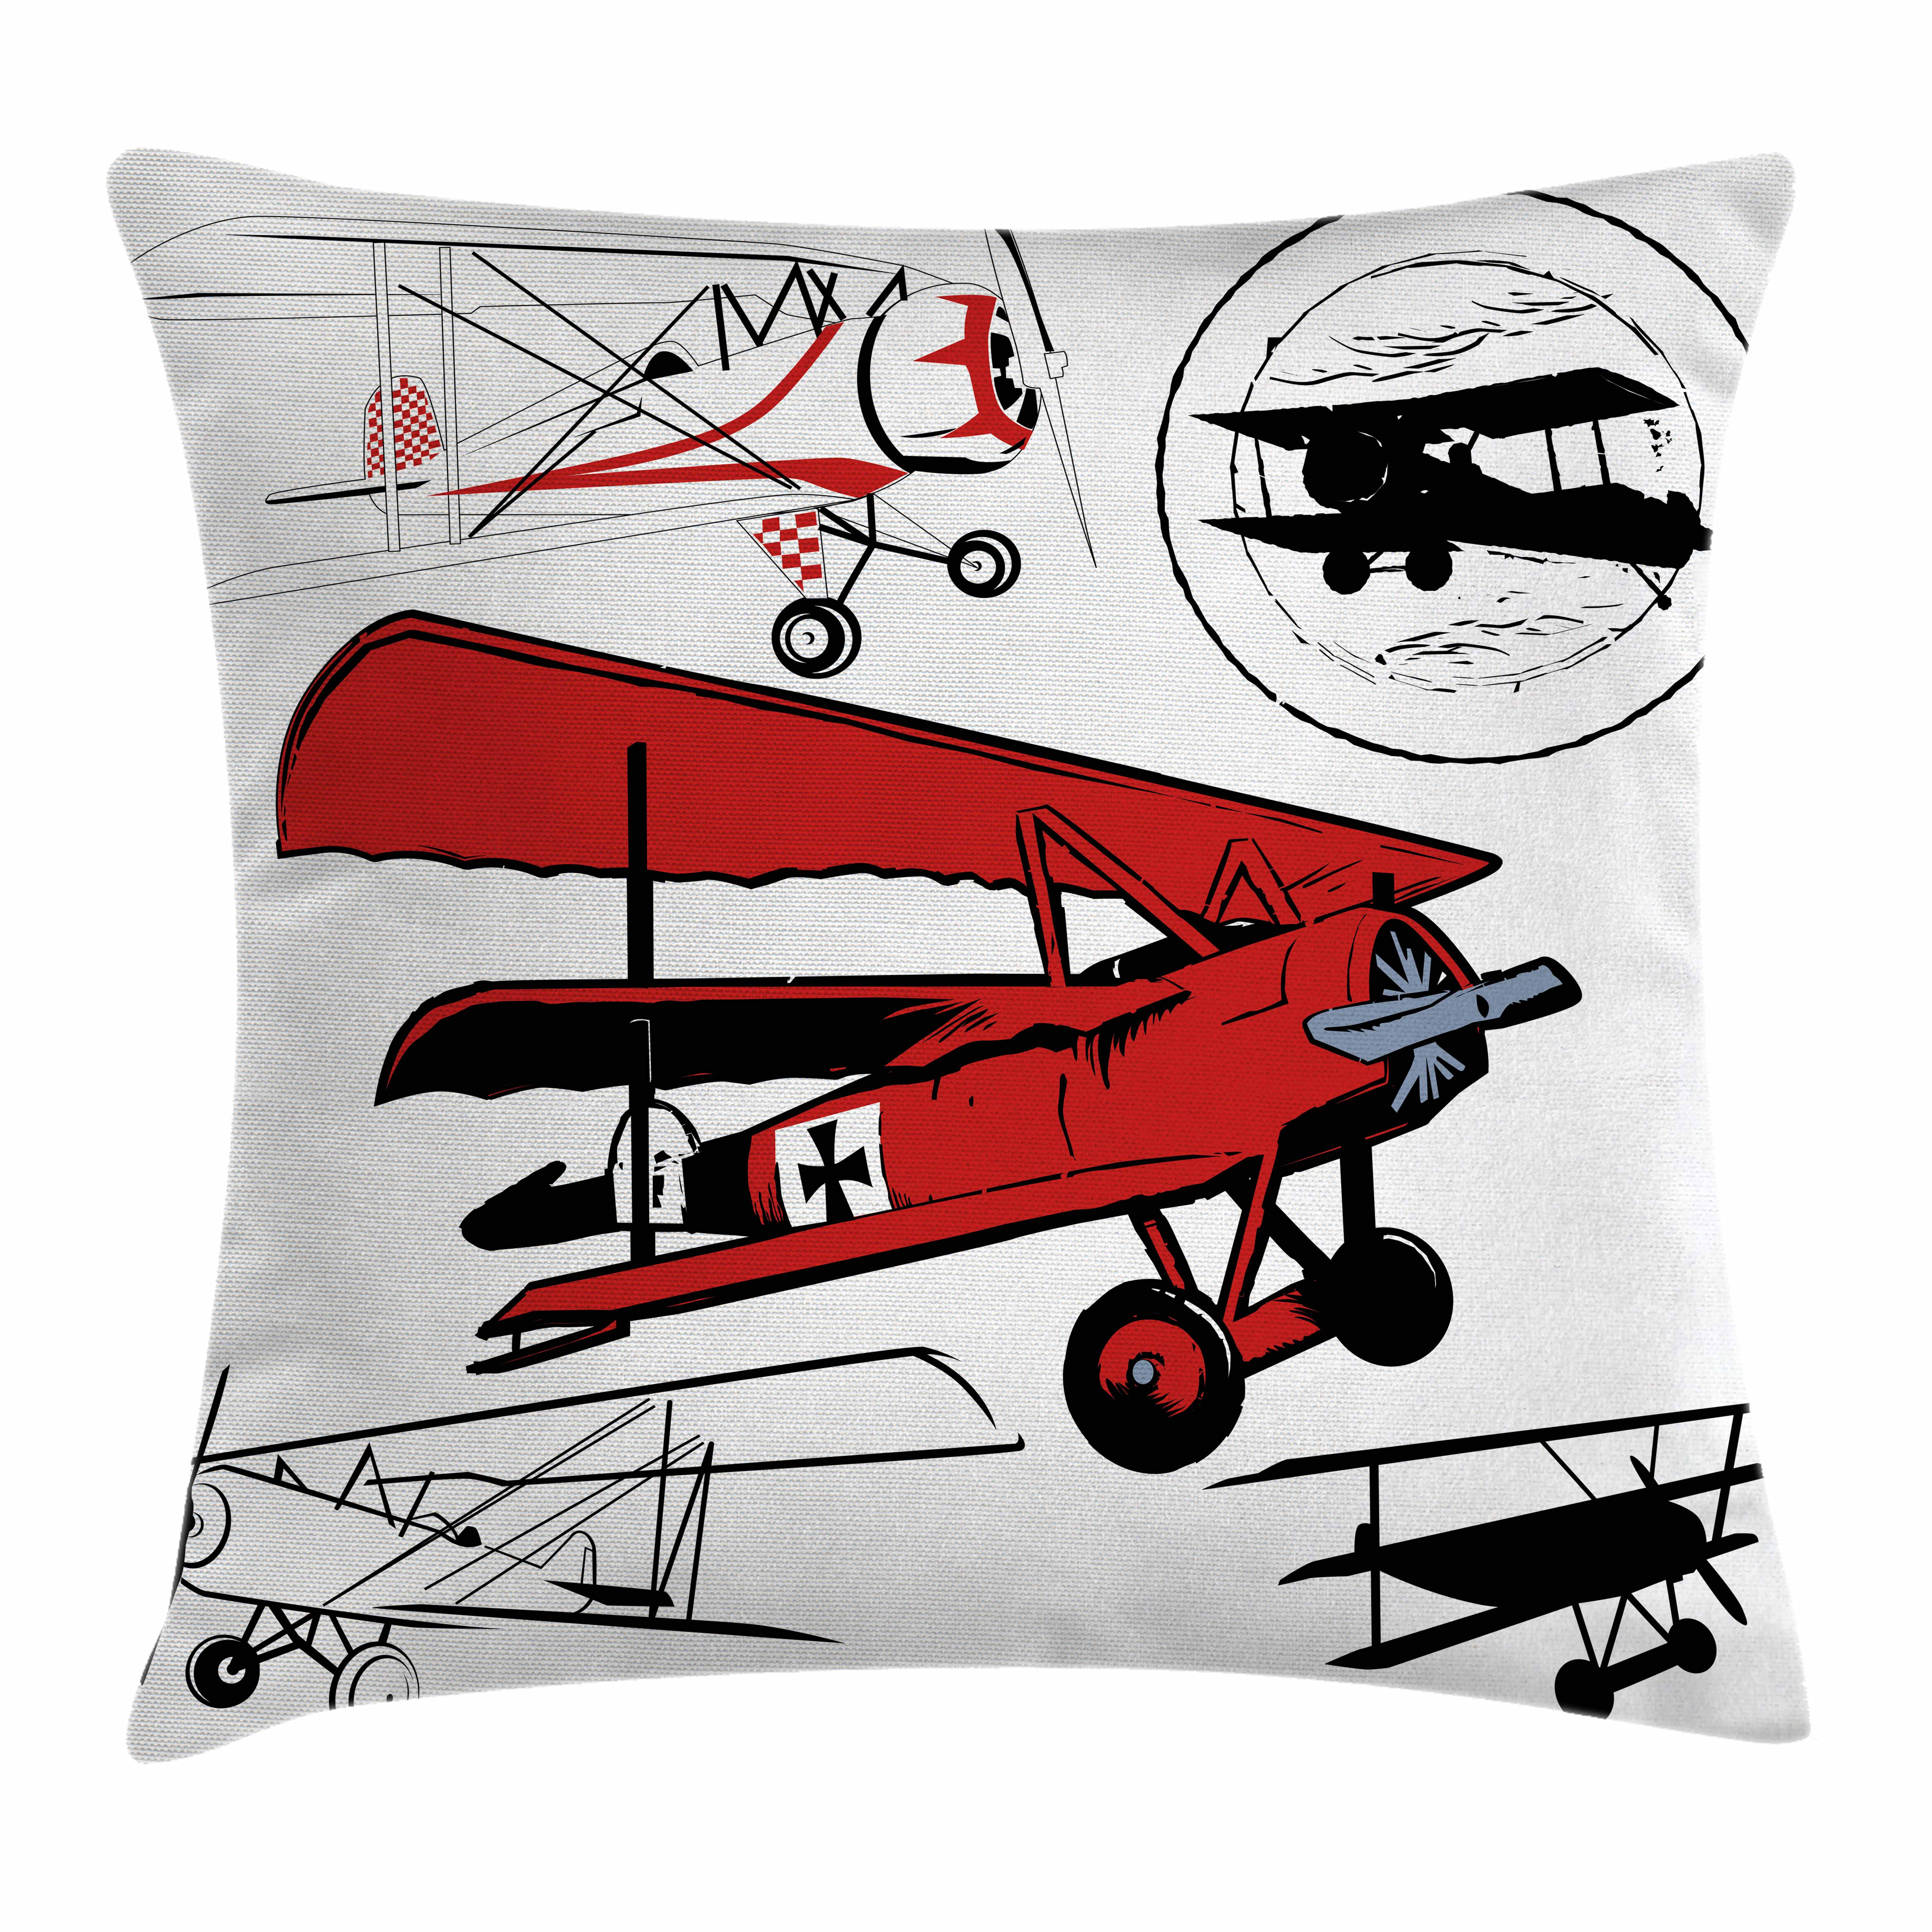 Vintage Airplane Decor Throw Pillow Cushion Cover, Collection of Various Biplanes Nostalgic Antique Silhouettes, Decorative Square Accent Pillow Case, 20 X 20 Inches, Red White Black, by Ambesonne